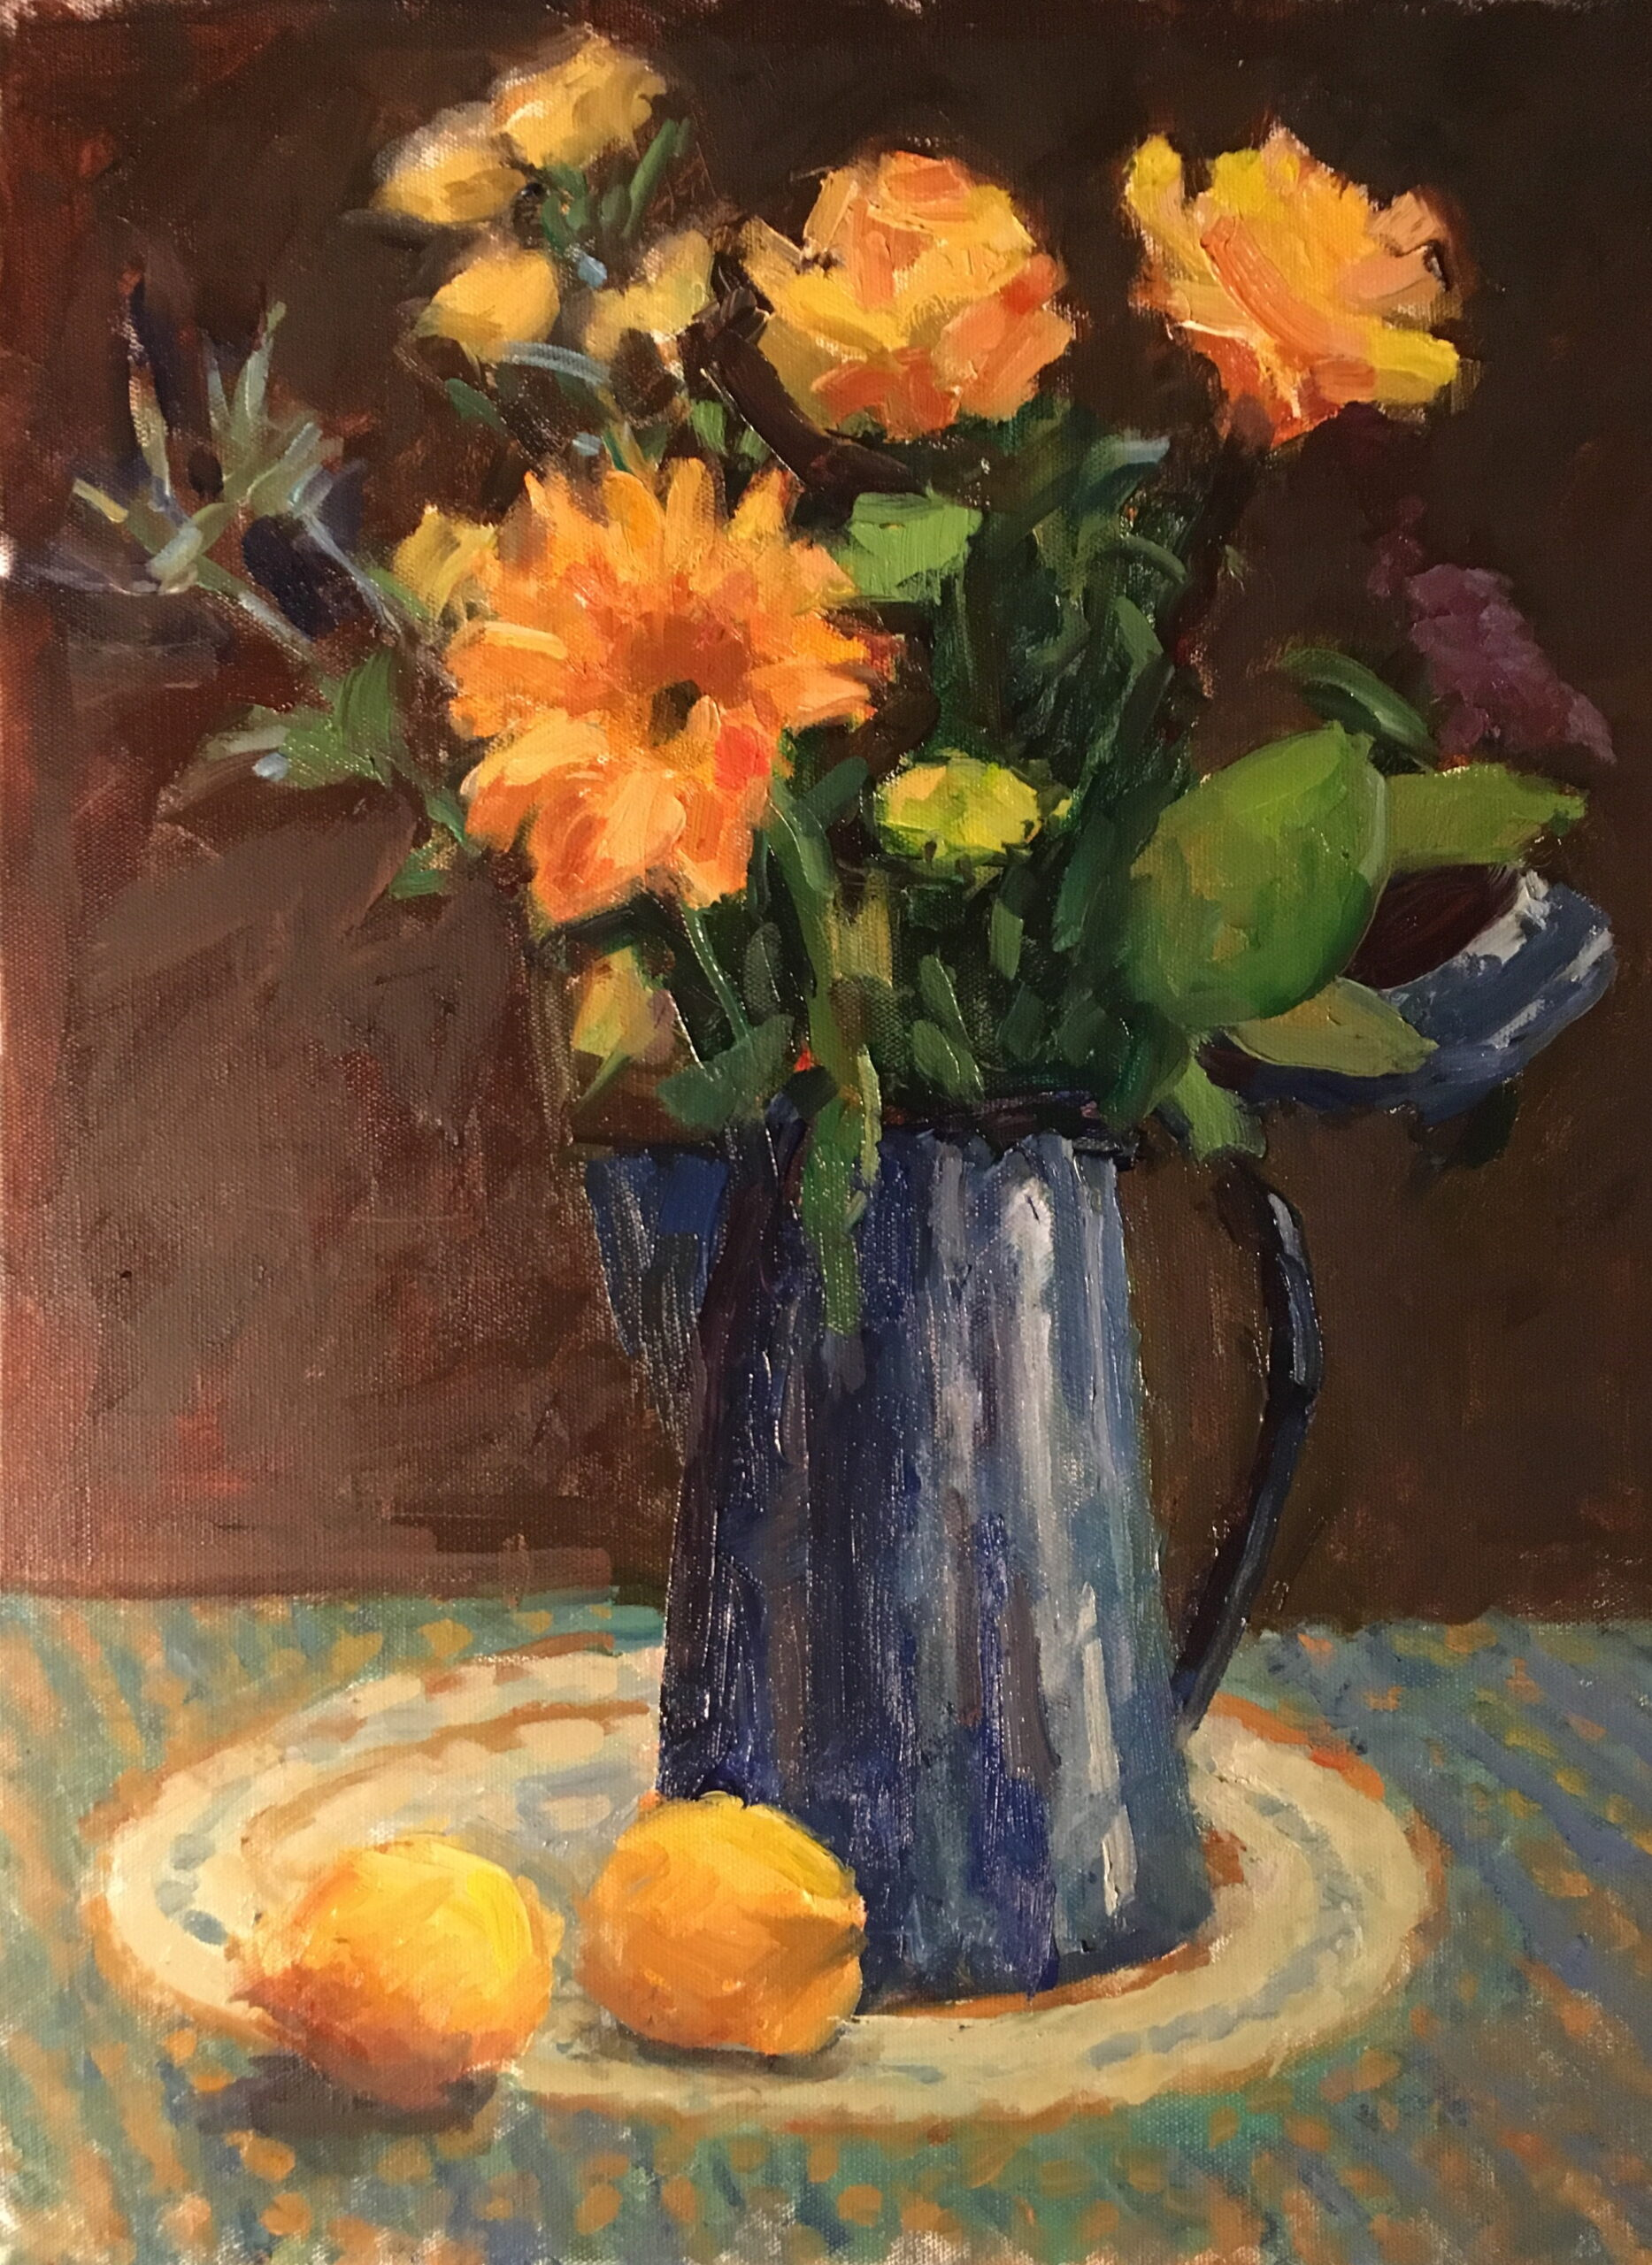 Coffee Pot Bouquet, Oil on Canvas, 20 x 16 Inches, by Susan Grisell, $550